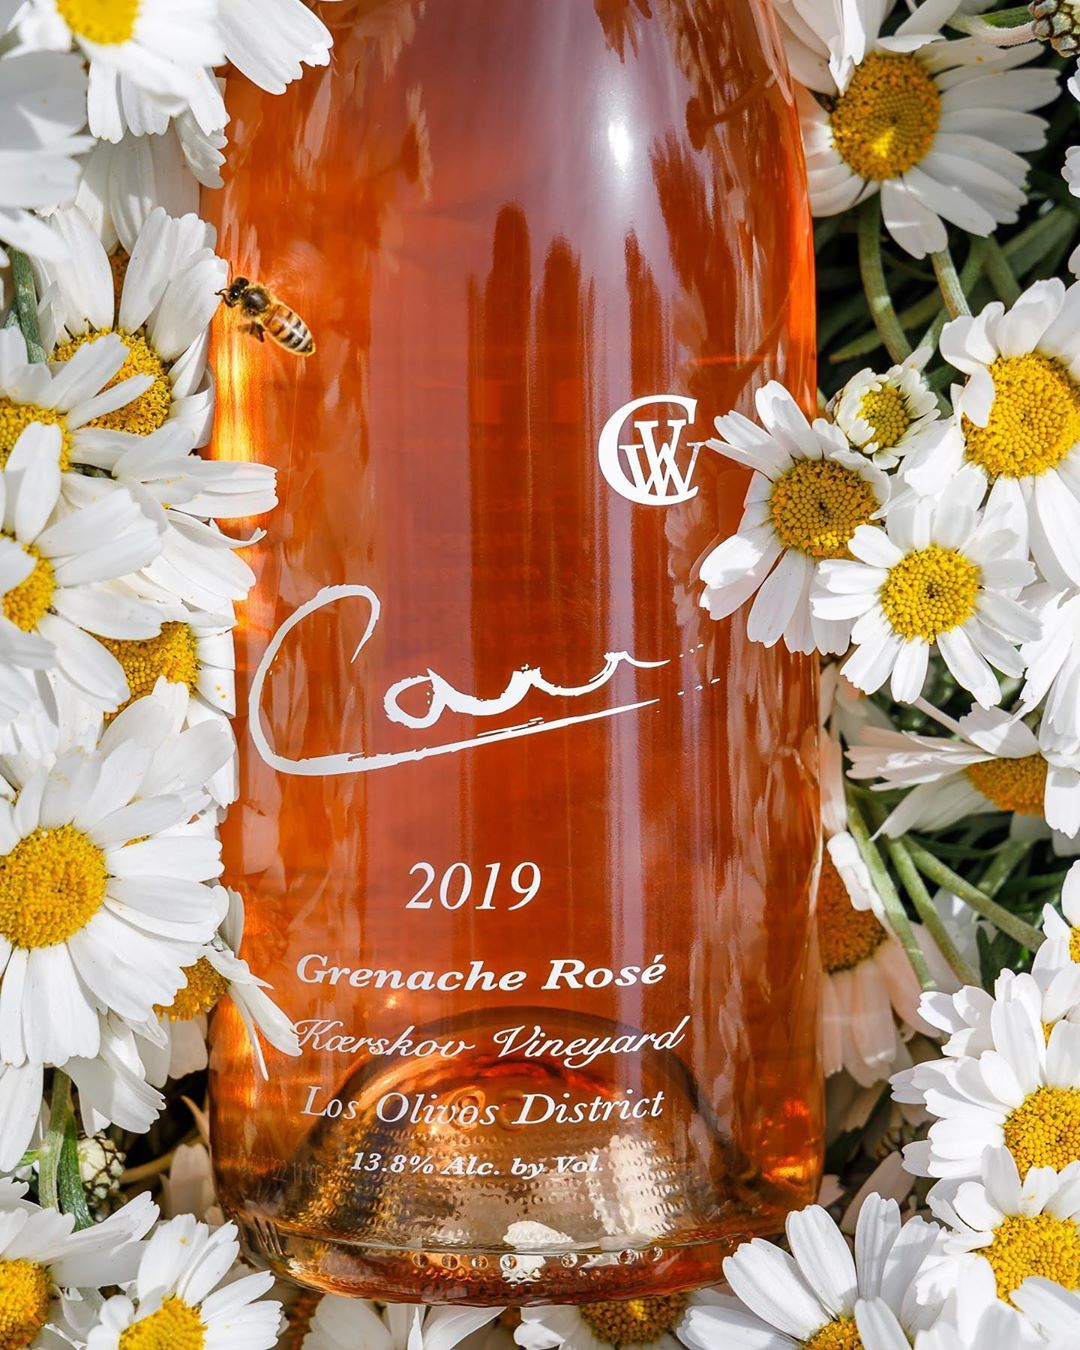 Carr Winery On Instagram Spring Is Here And We Ve Got New Carr Wines Coming Your Way This 2019 Rose From Kaerskov Vineyard In Th In 2020 Wines Spring Is Here Winery